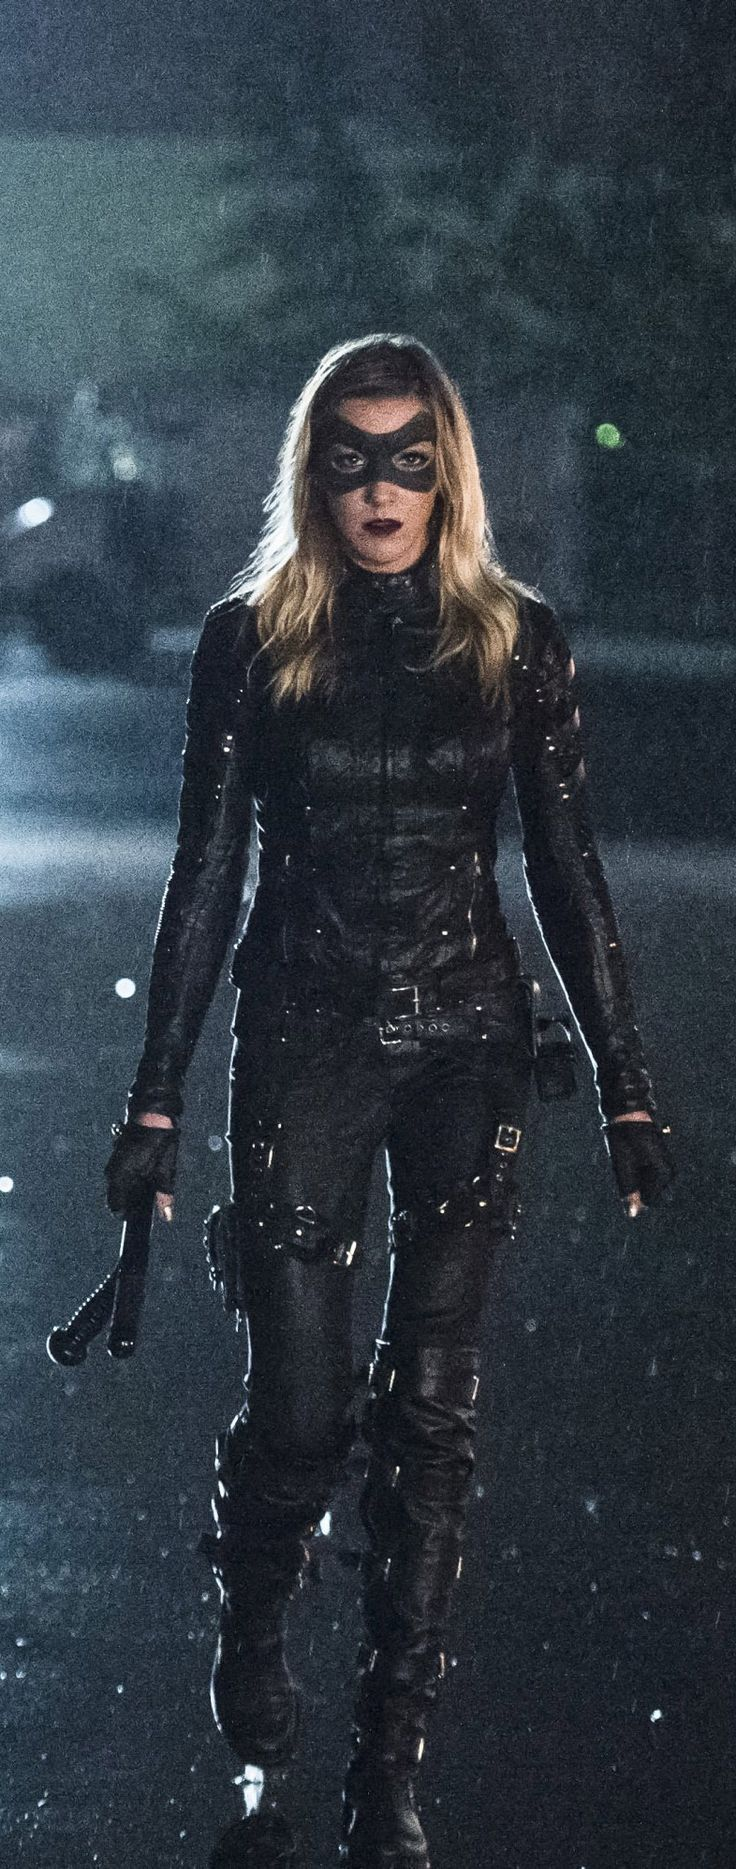 "katherine evelyn anita ""katie"" cassidy (dinah laurel lance / black canary) - season 4, episode 6"